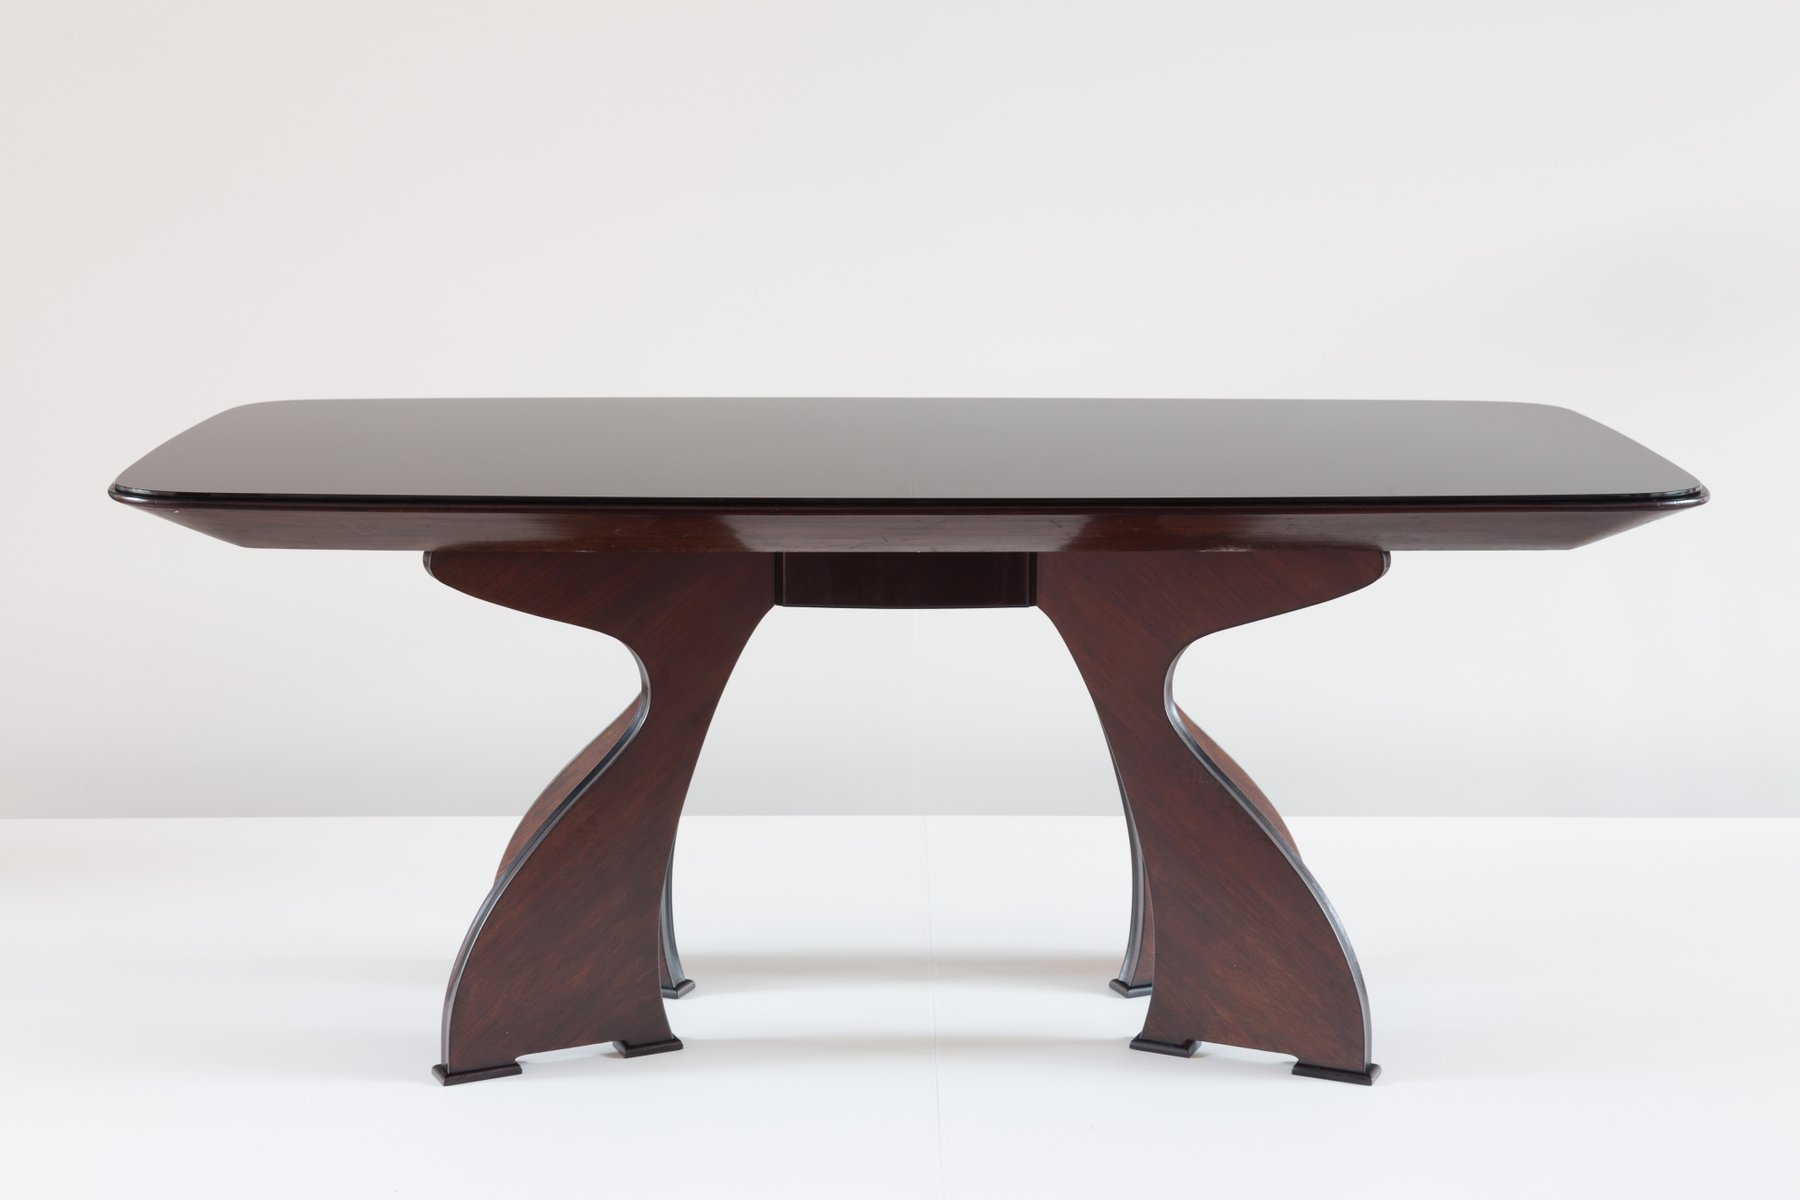 Sculptural Italian Modern Rosewood Dining Table for sale at Pamono